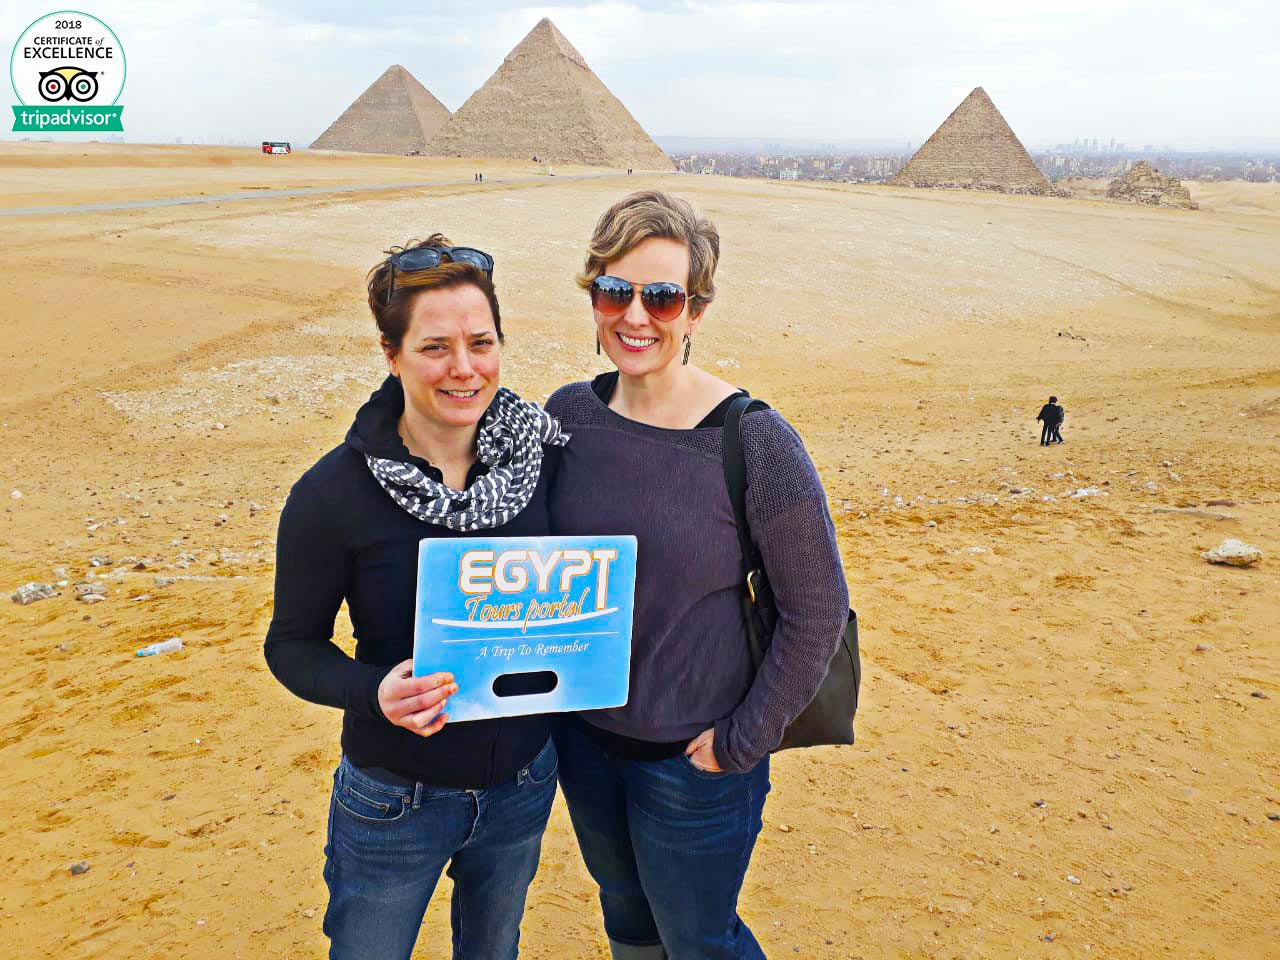 Egypt Friends Tours - How to Plan A Vacation With Friends in Egypt - Egypt Tours Portal